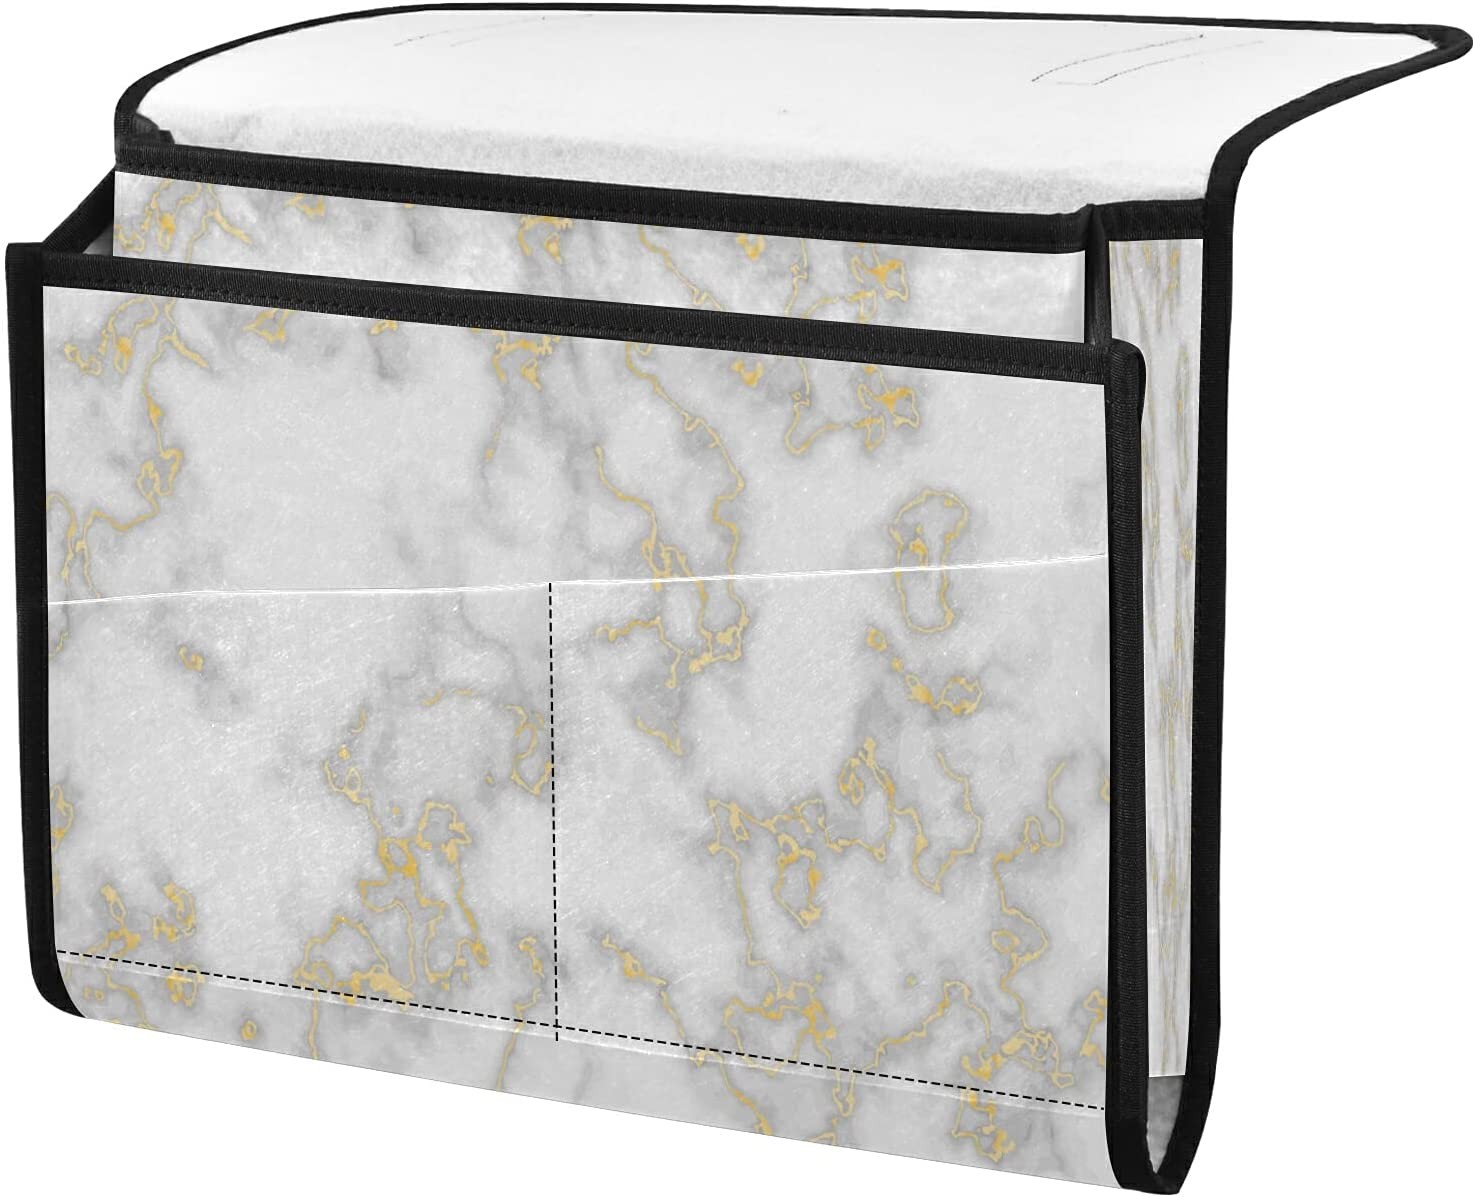 List price New products world's highest quality popular Bedside Storage Organizer Gold Marble Texure Caddy Beside Tabl